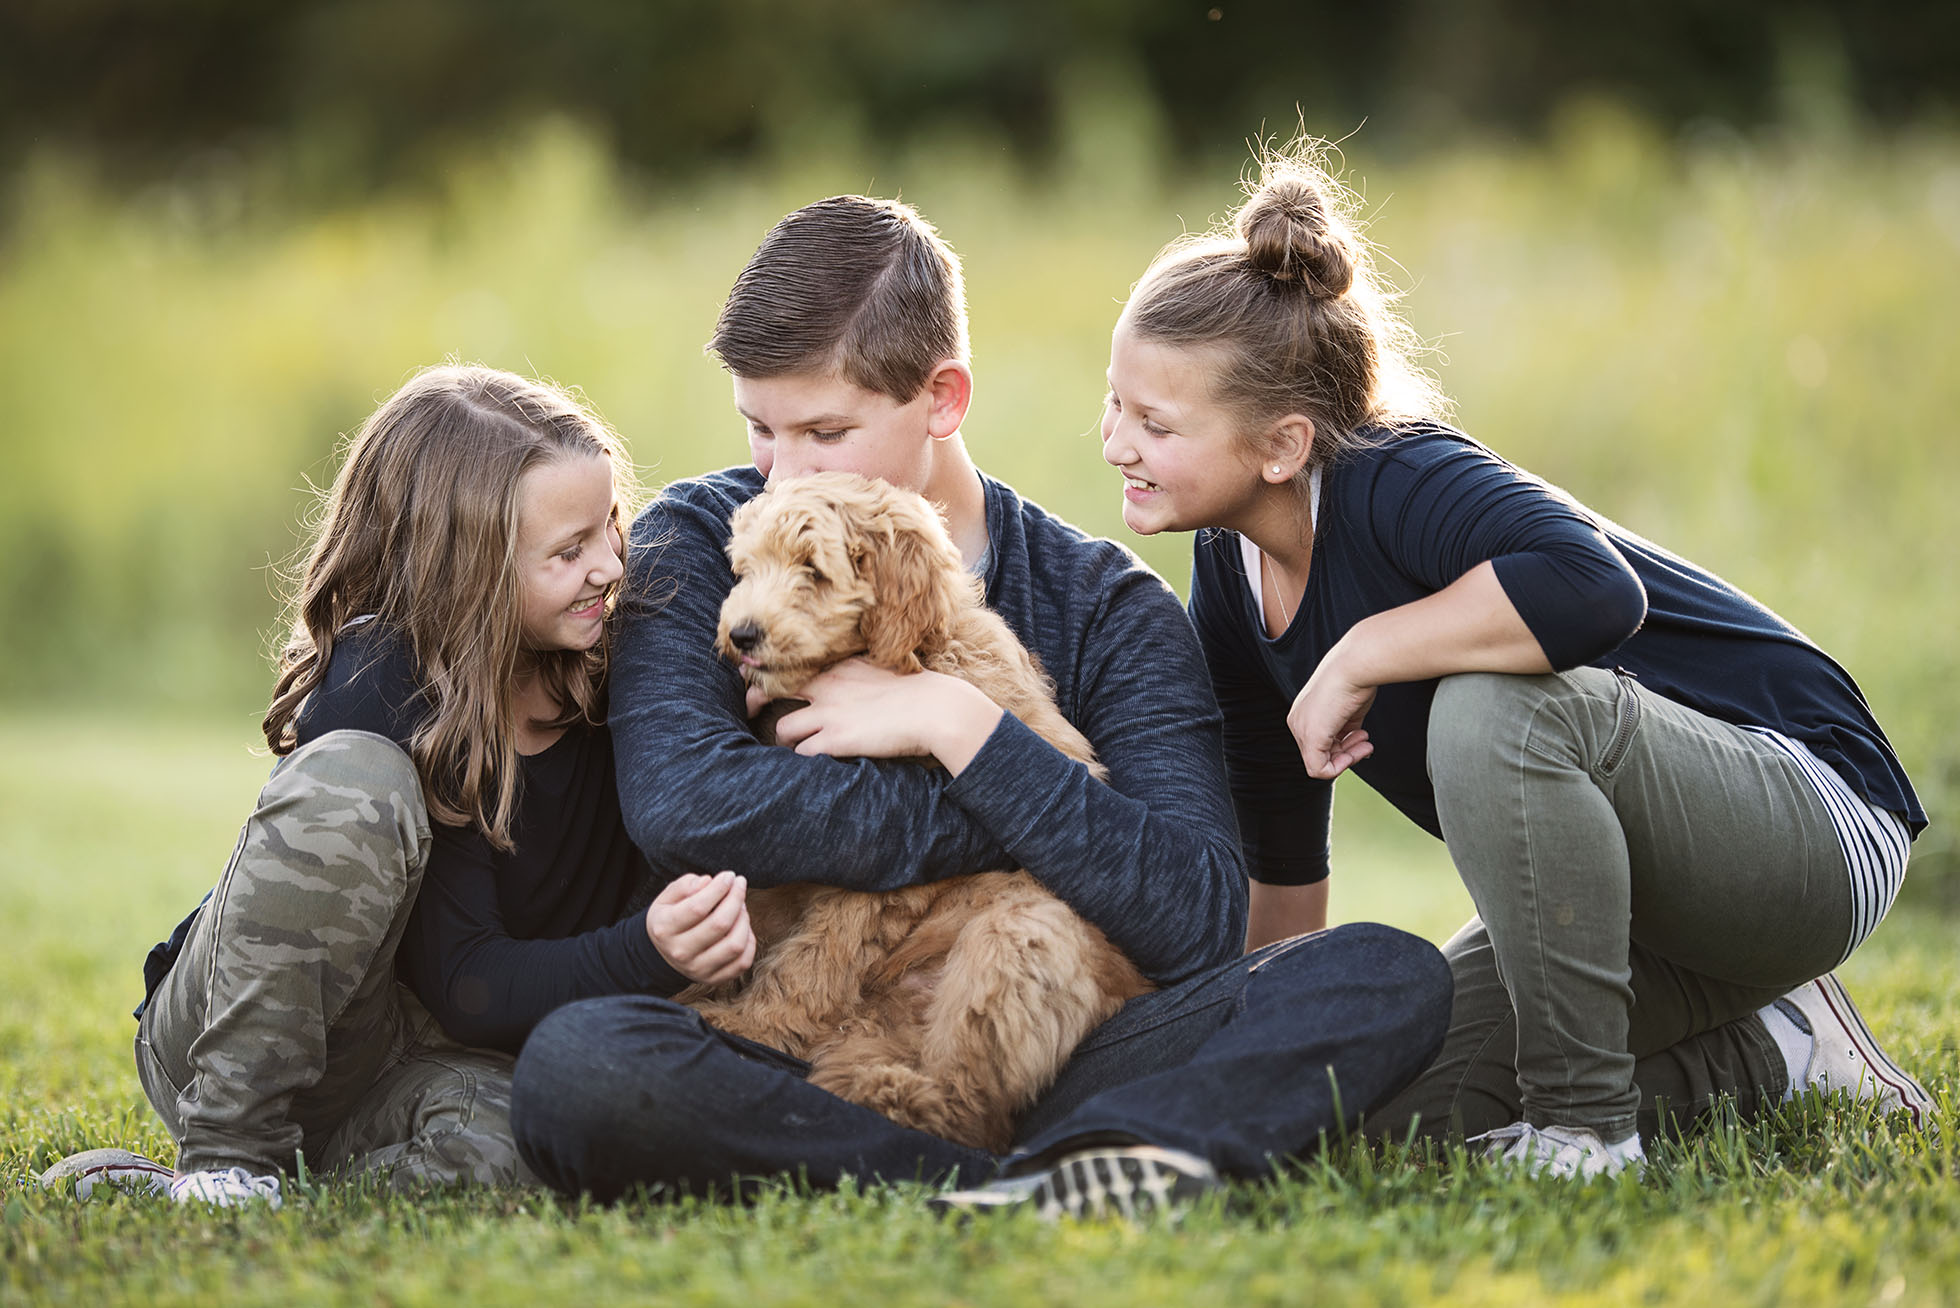 three kids with golden doodle puppy in grass by kellie bieser